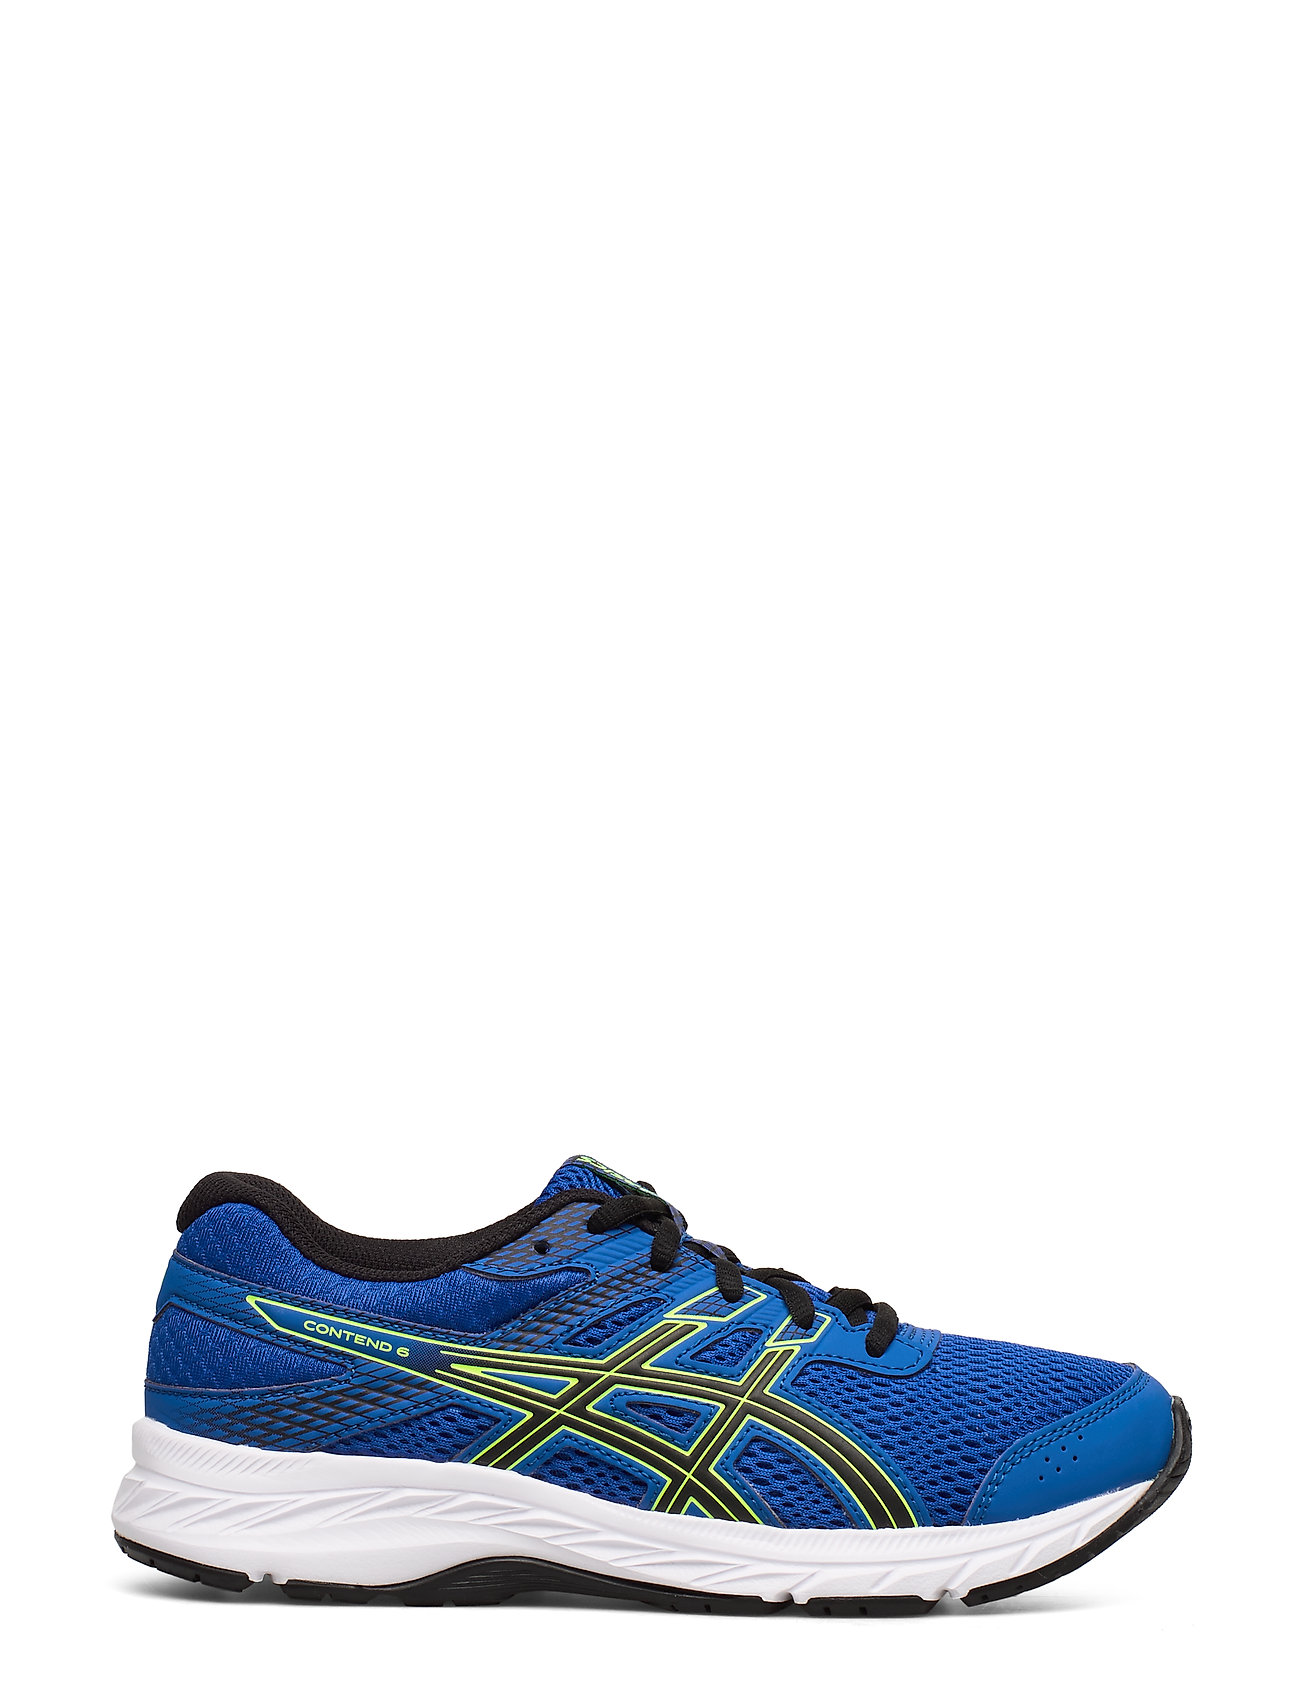 Contend 6 Gs Shoes Sports Shoes Running/training Shoes Blå Asics